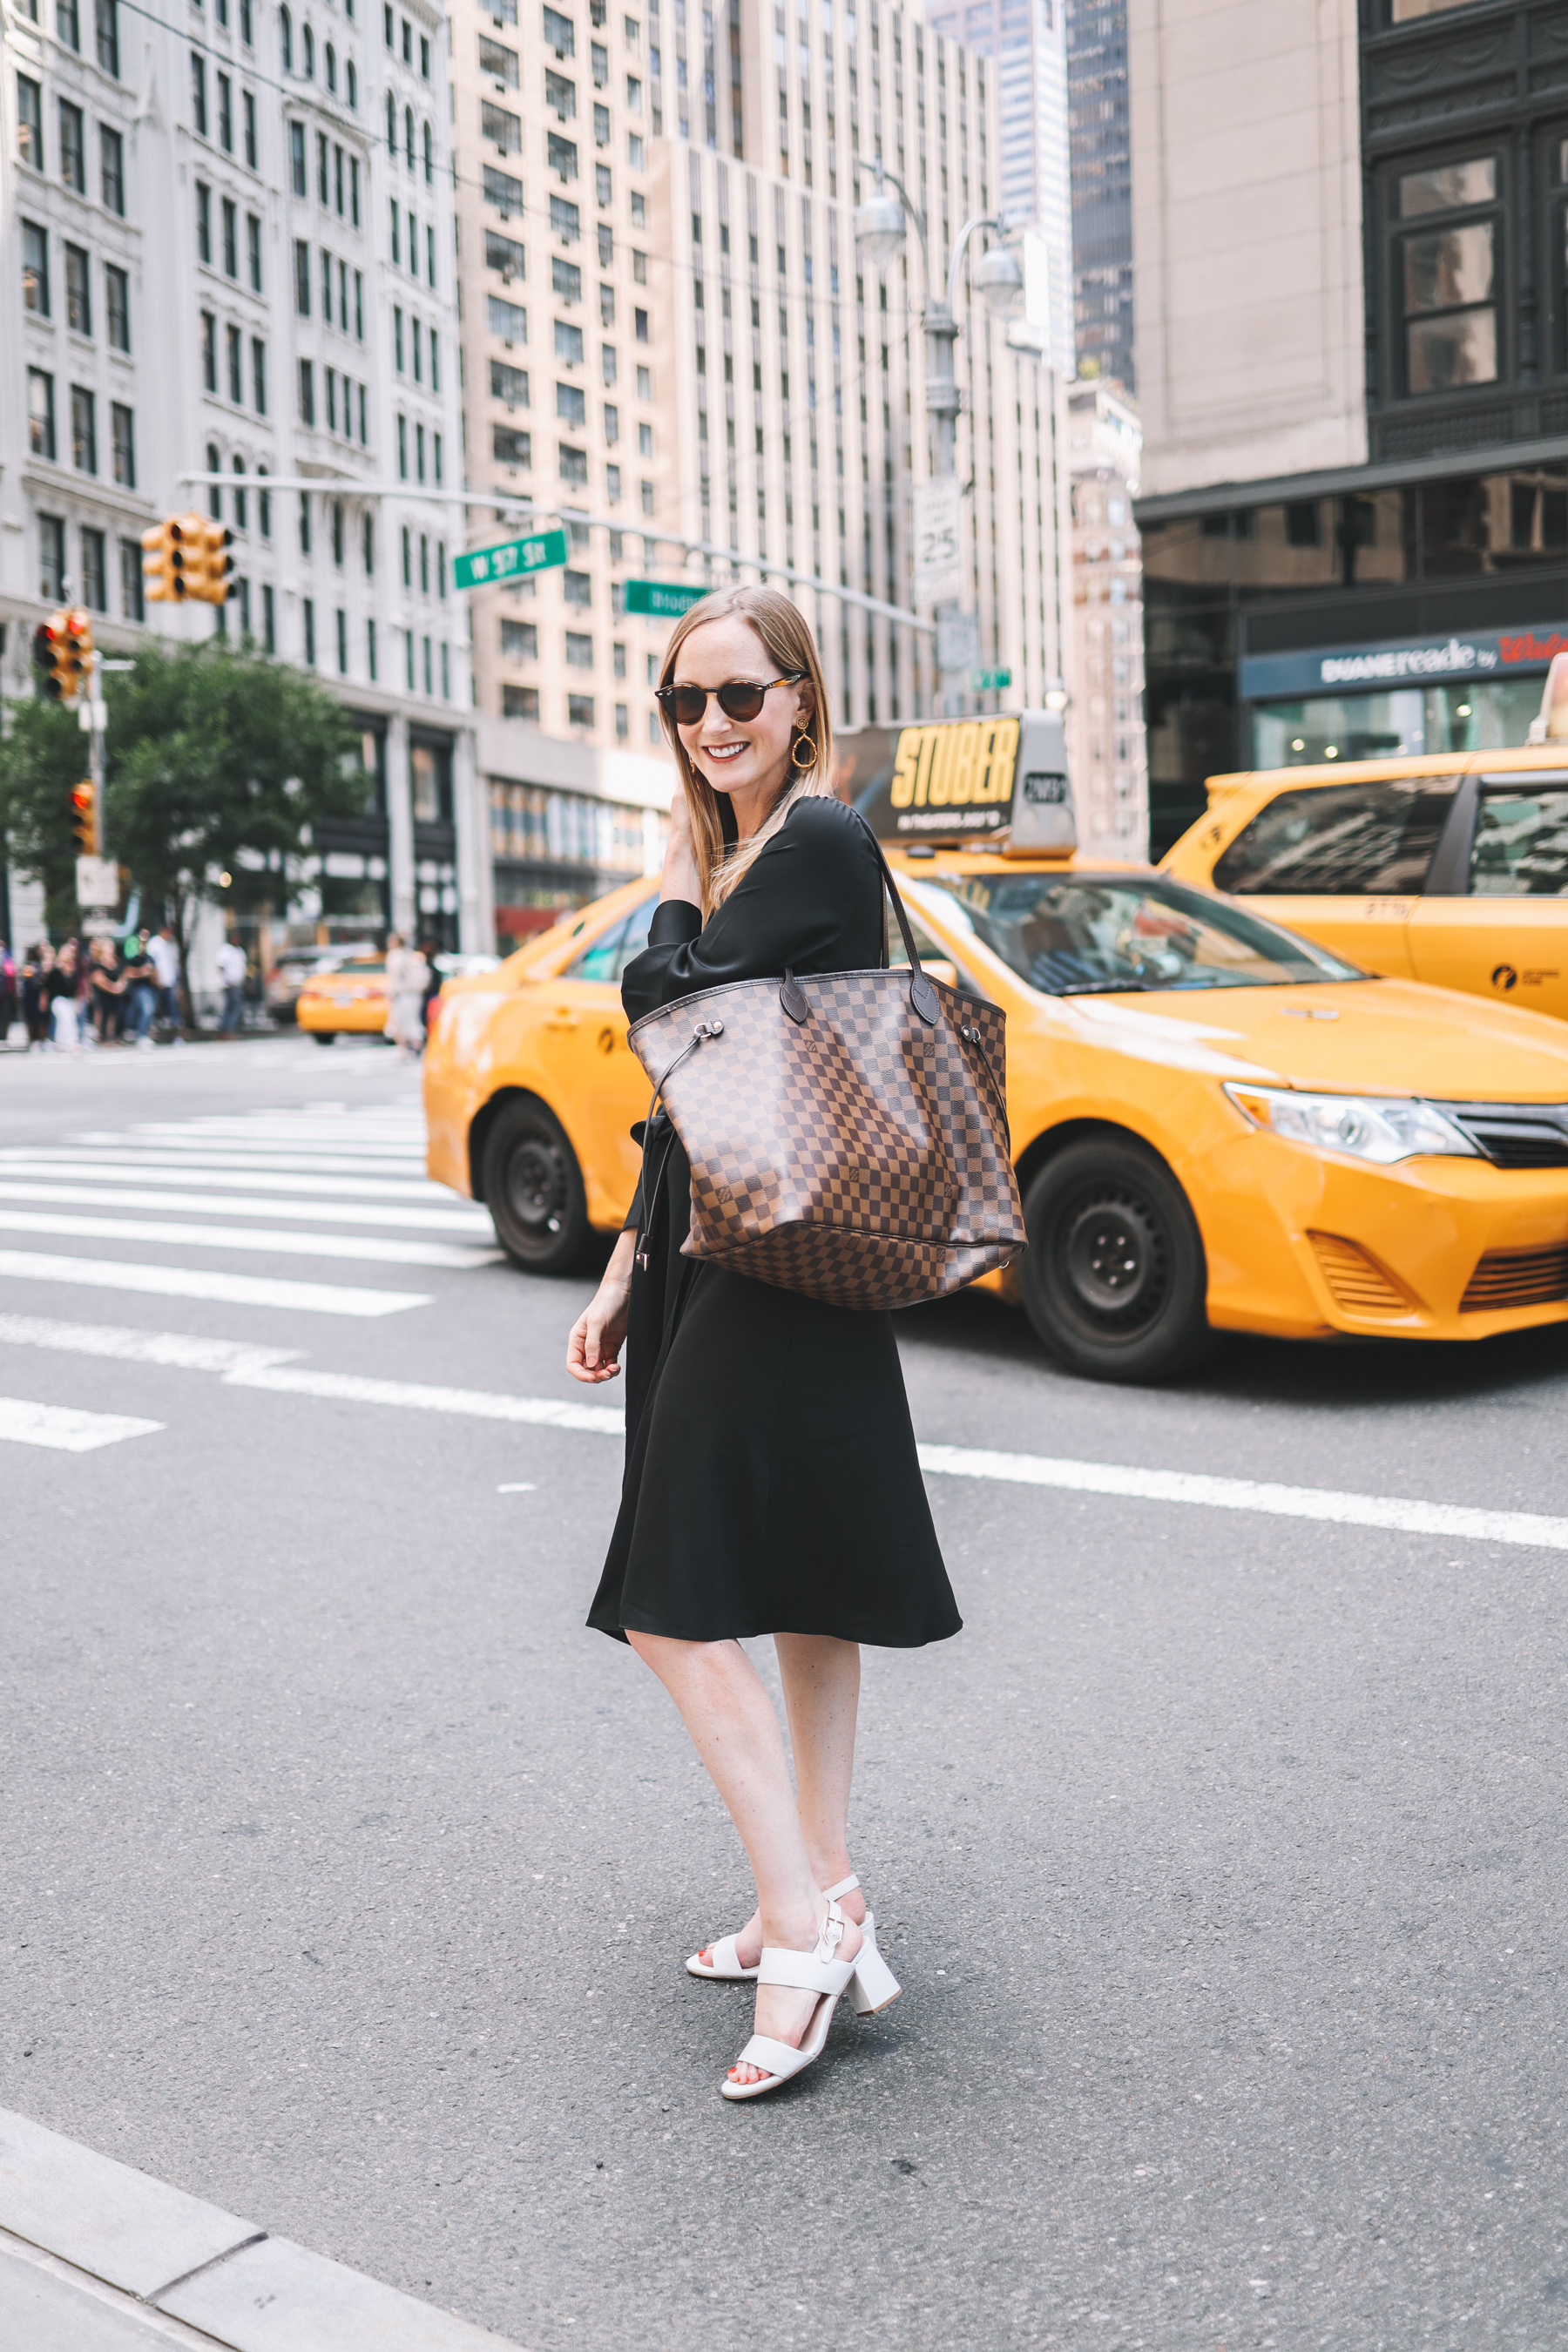 Kelly wearing a black wrap dress and holding a Louis Vuitton purse with a yellow, New York City yellow cab in the background